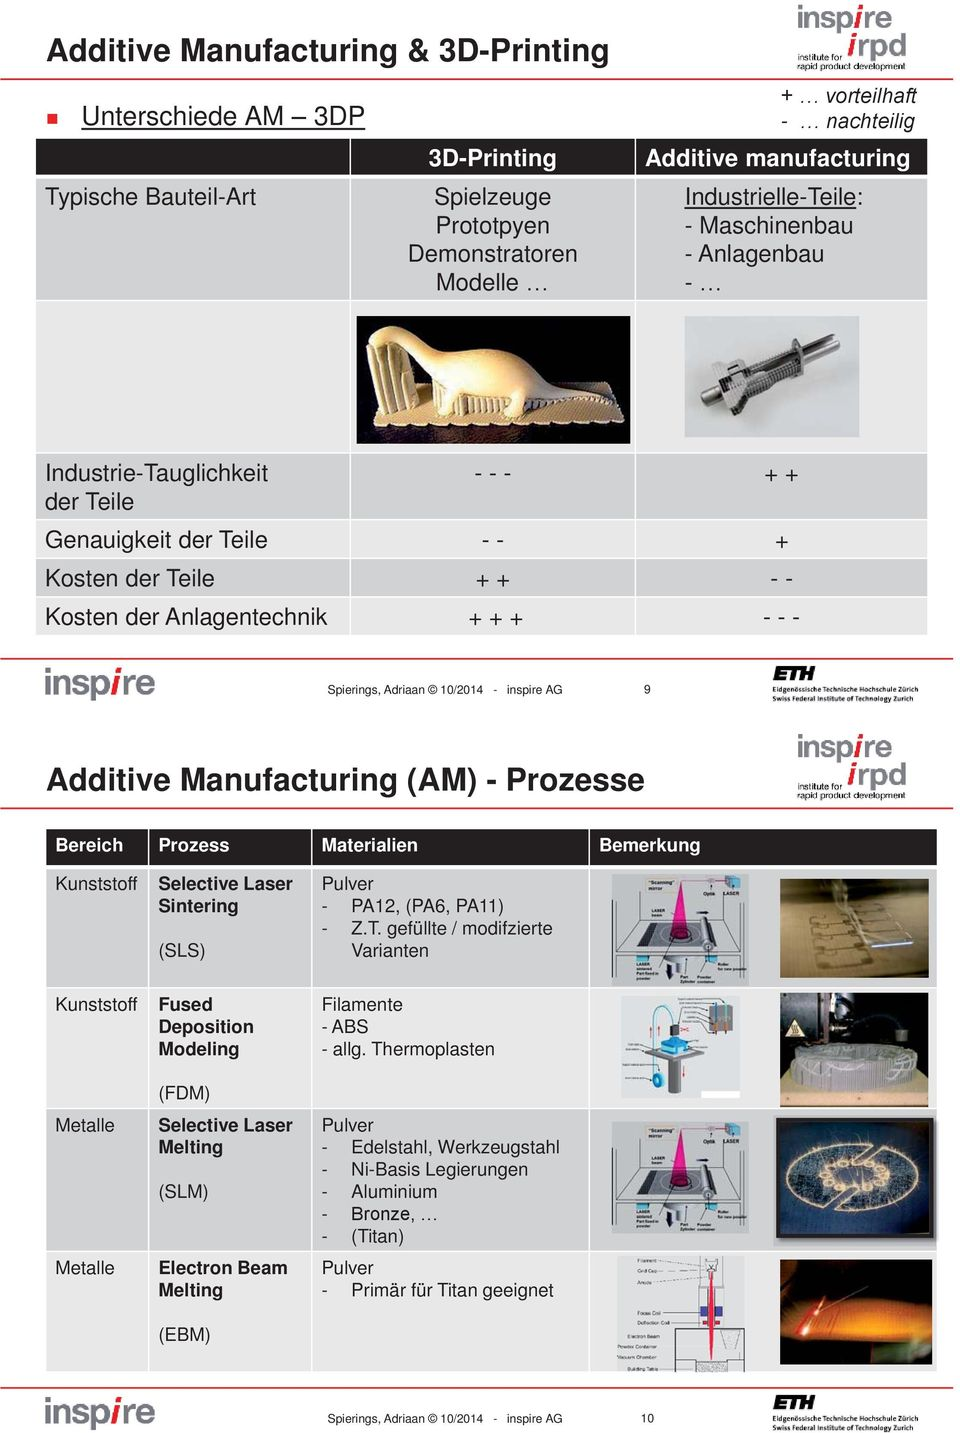 Adriaan 10/2014 - inspire AG 9 Additive Manufacturing (AM) - Prozesse Bereich Prozess Materialien Bemerkung Kunststoff Selective Laser Sintering (SLS) Pulver - PA12, (PA6, PA11) - Z.T.